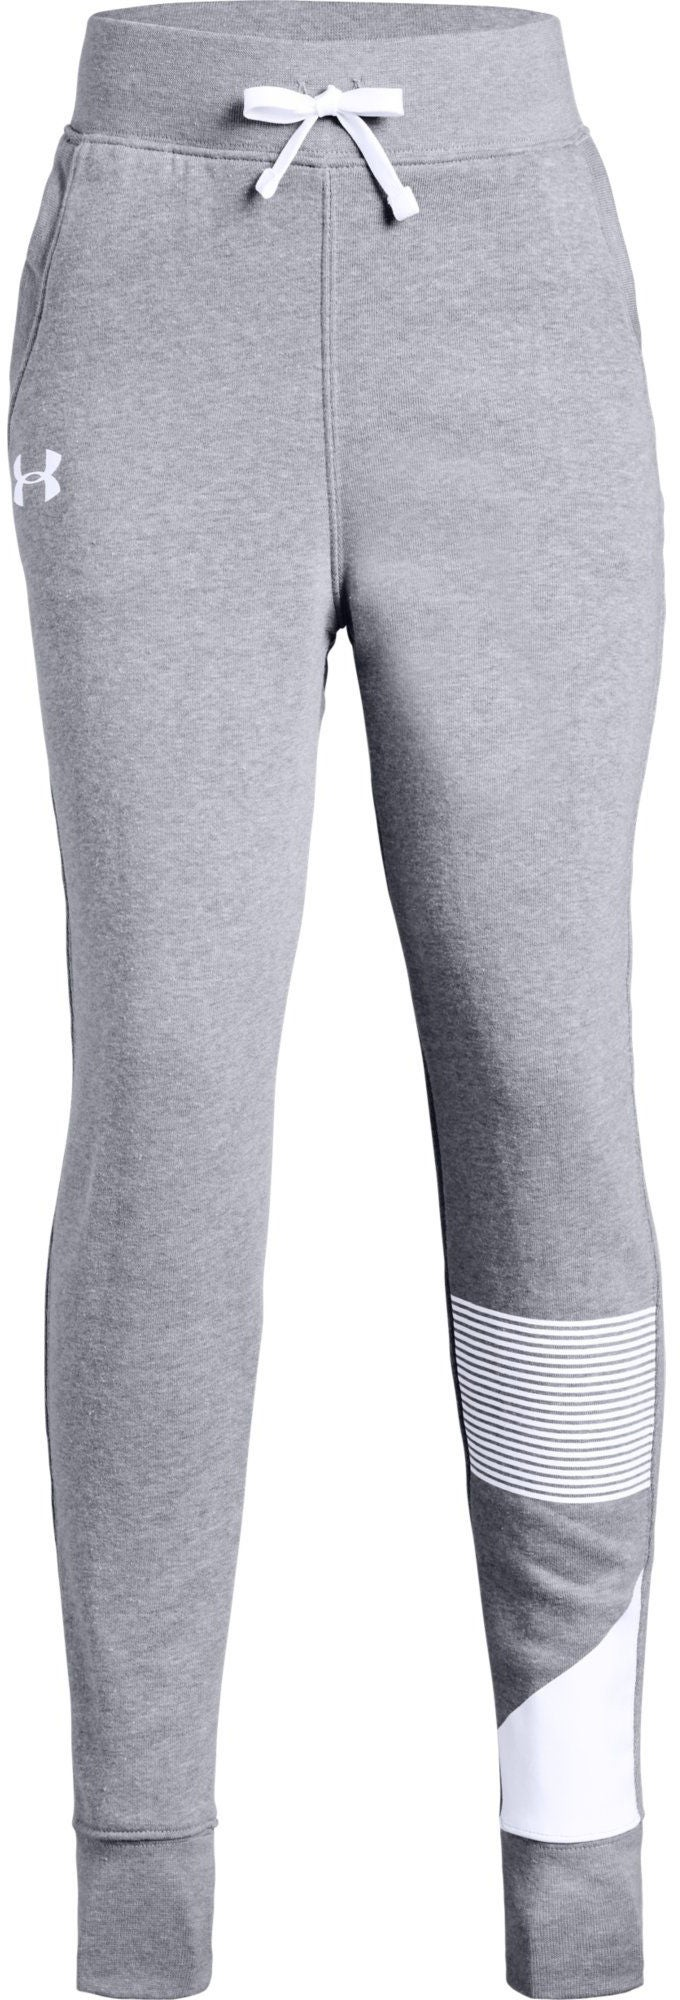 Under Armour Rival Jogger Byxor, Steel XS